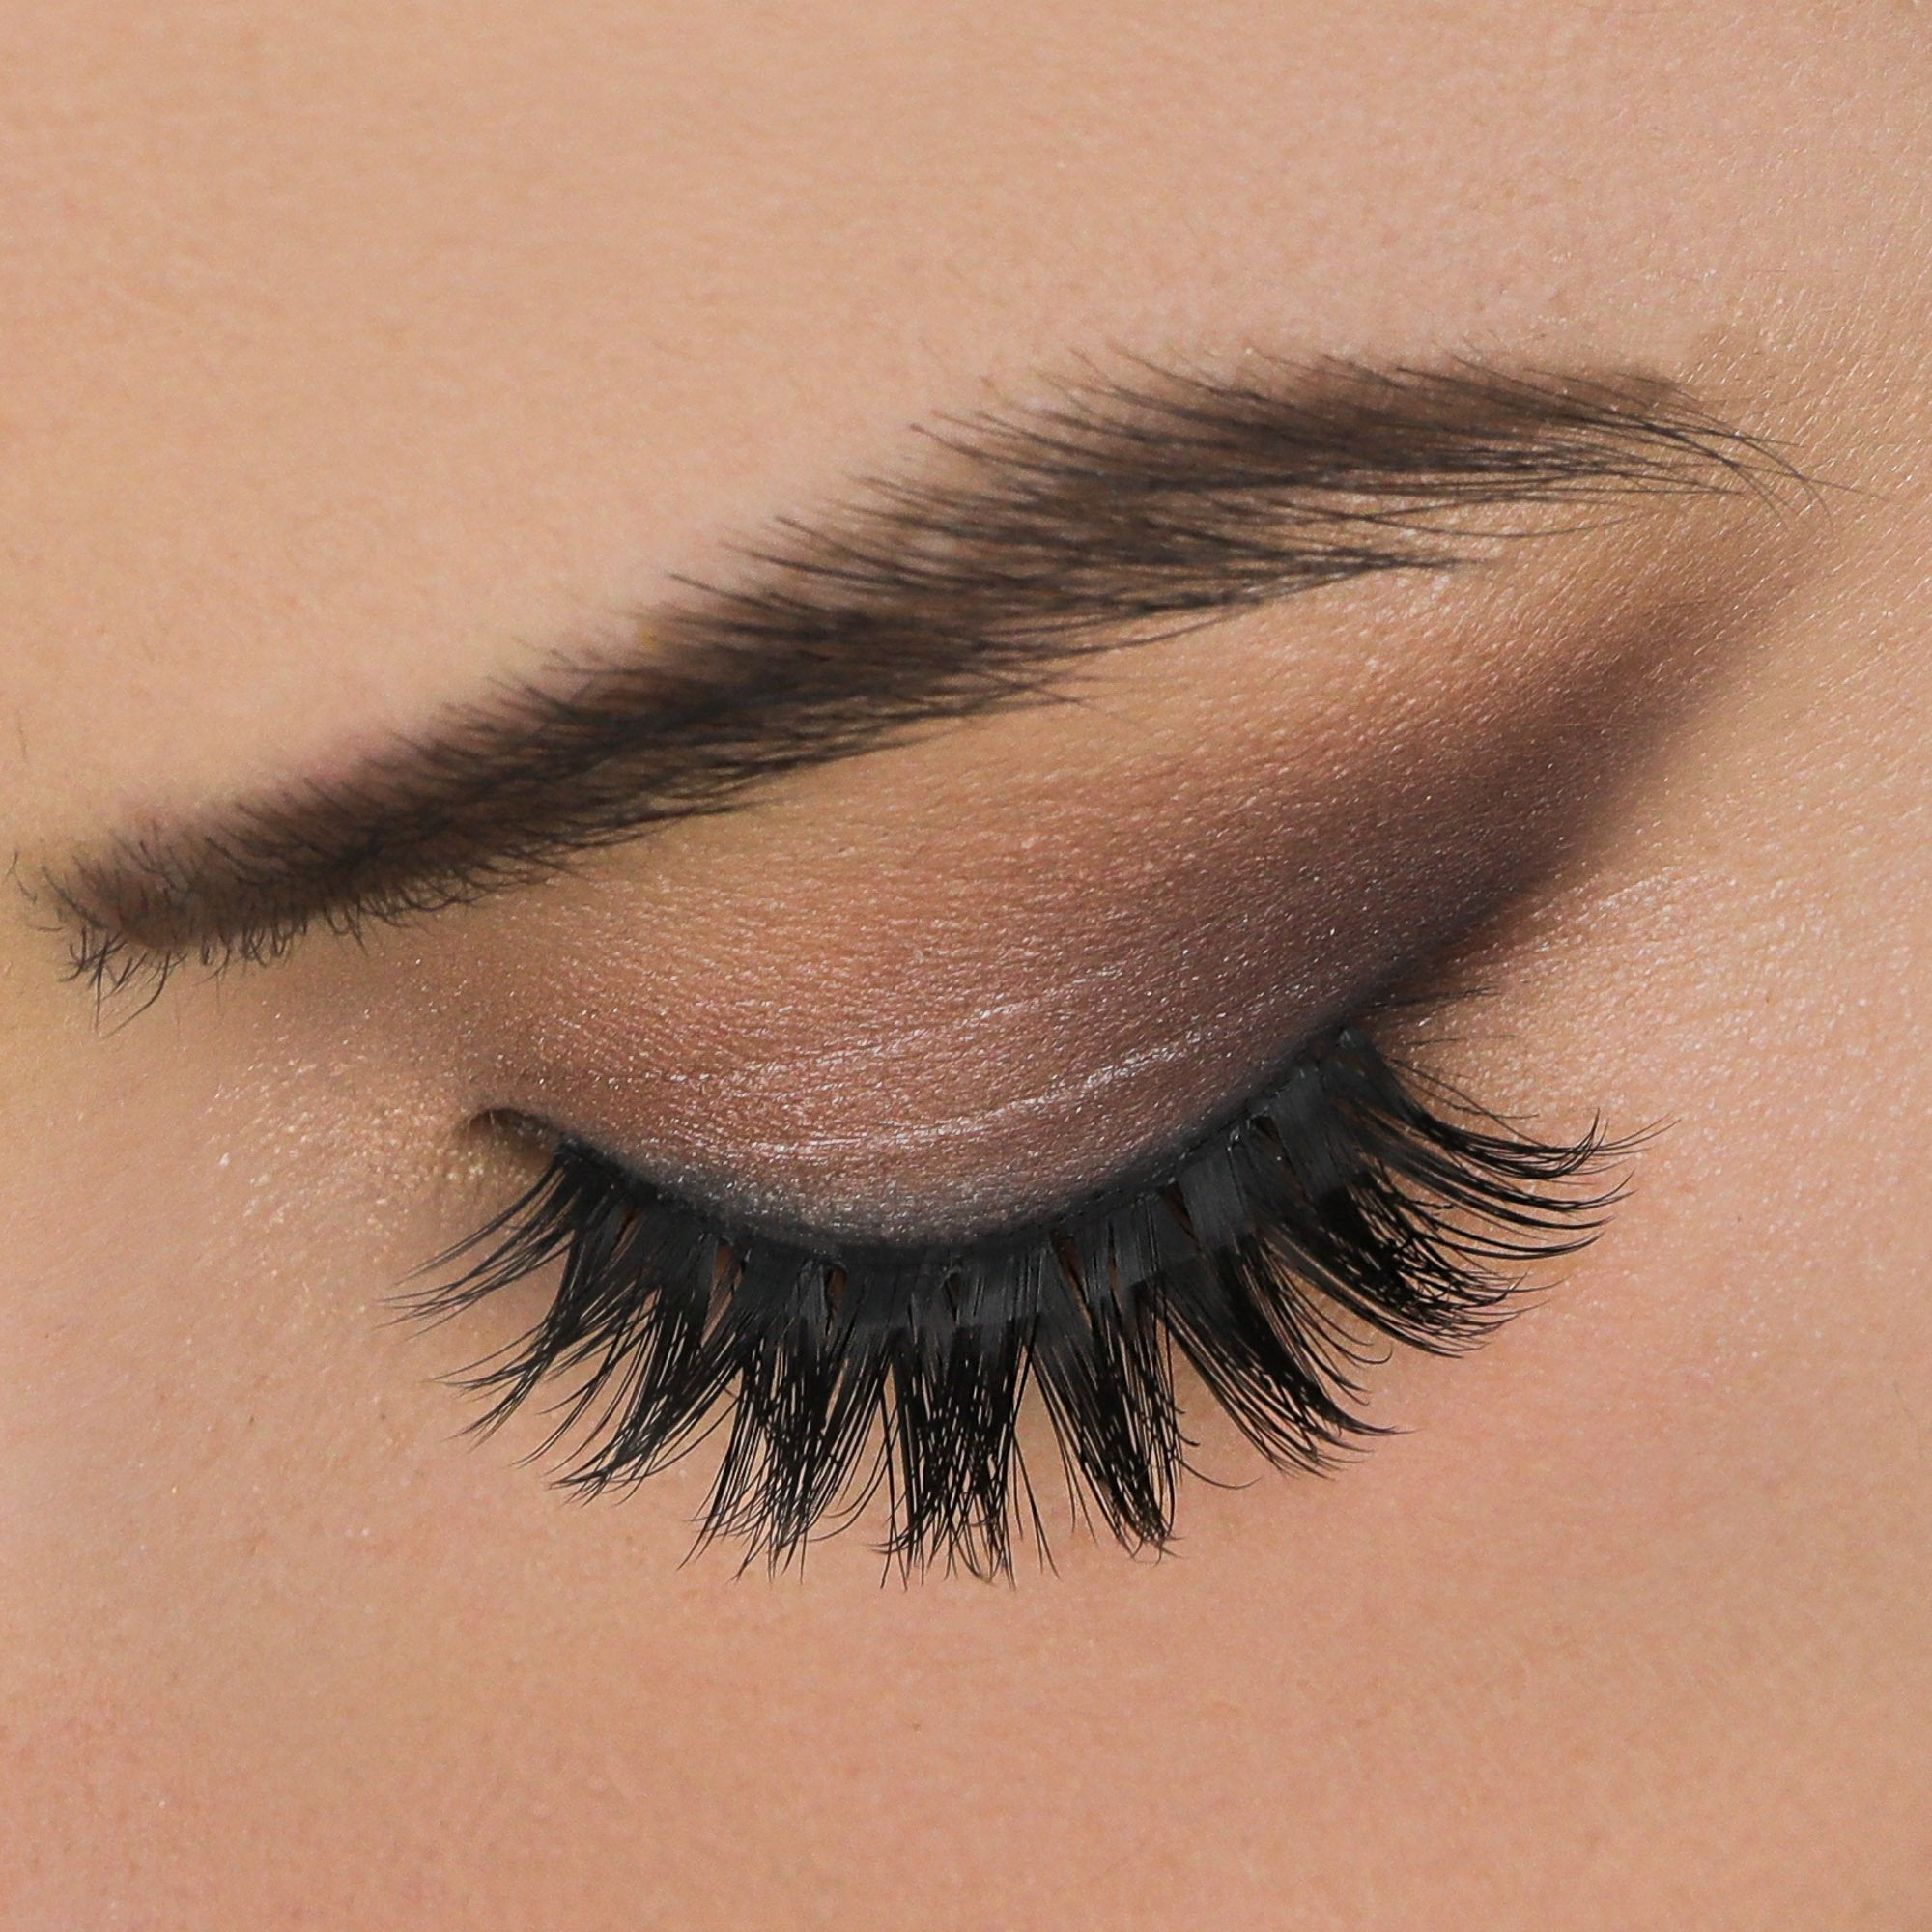 939687ee254 House Of Lashes Faux Mink Lashes (Posh) – Addoony Beauty